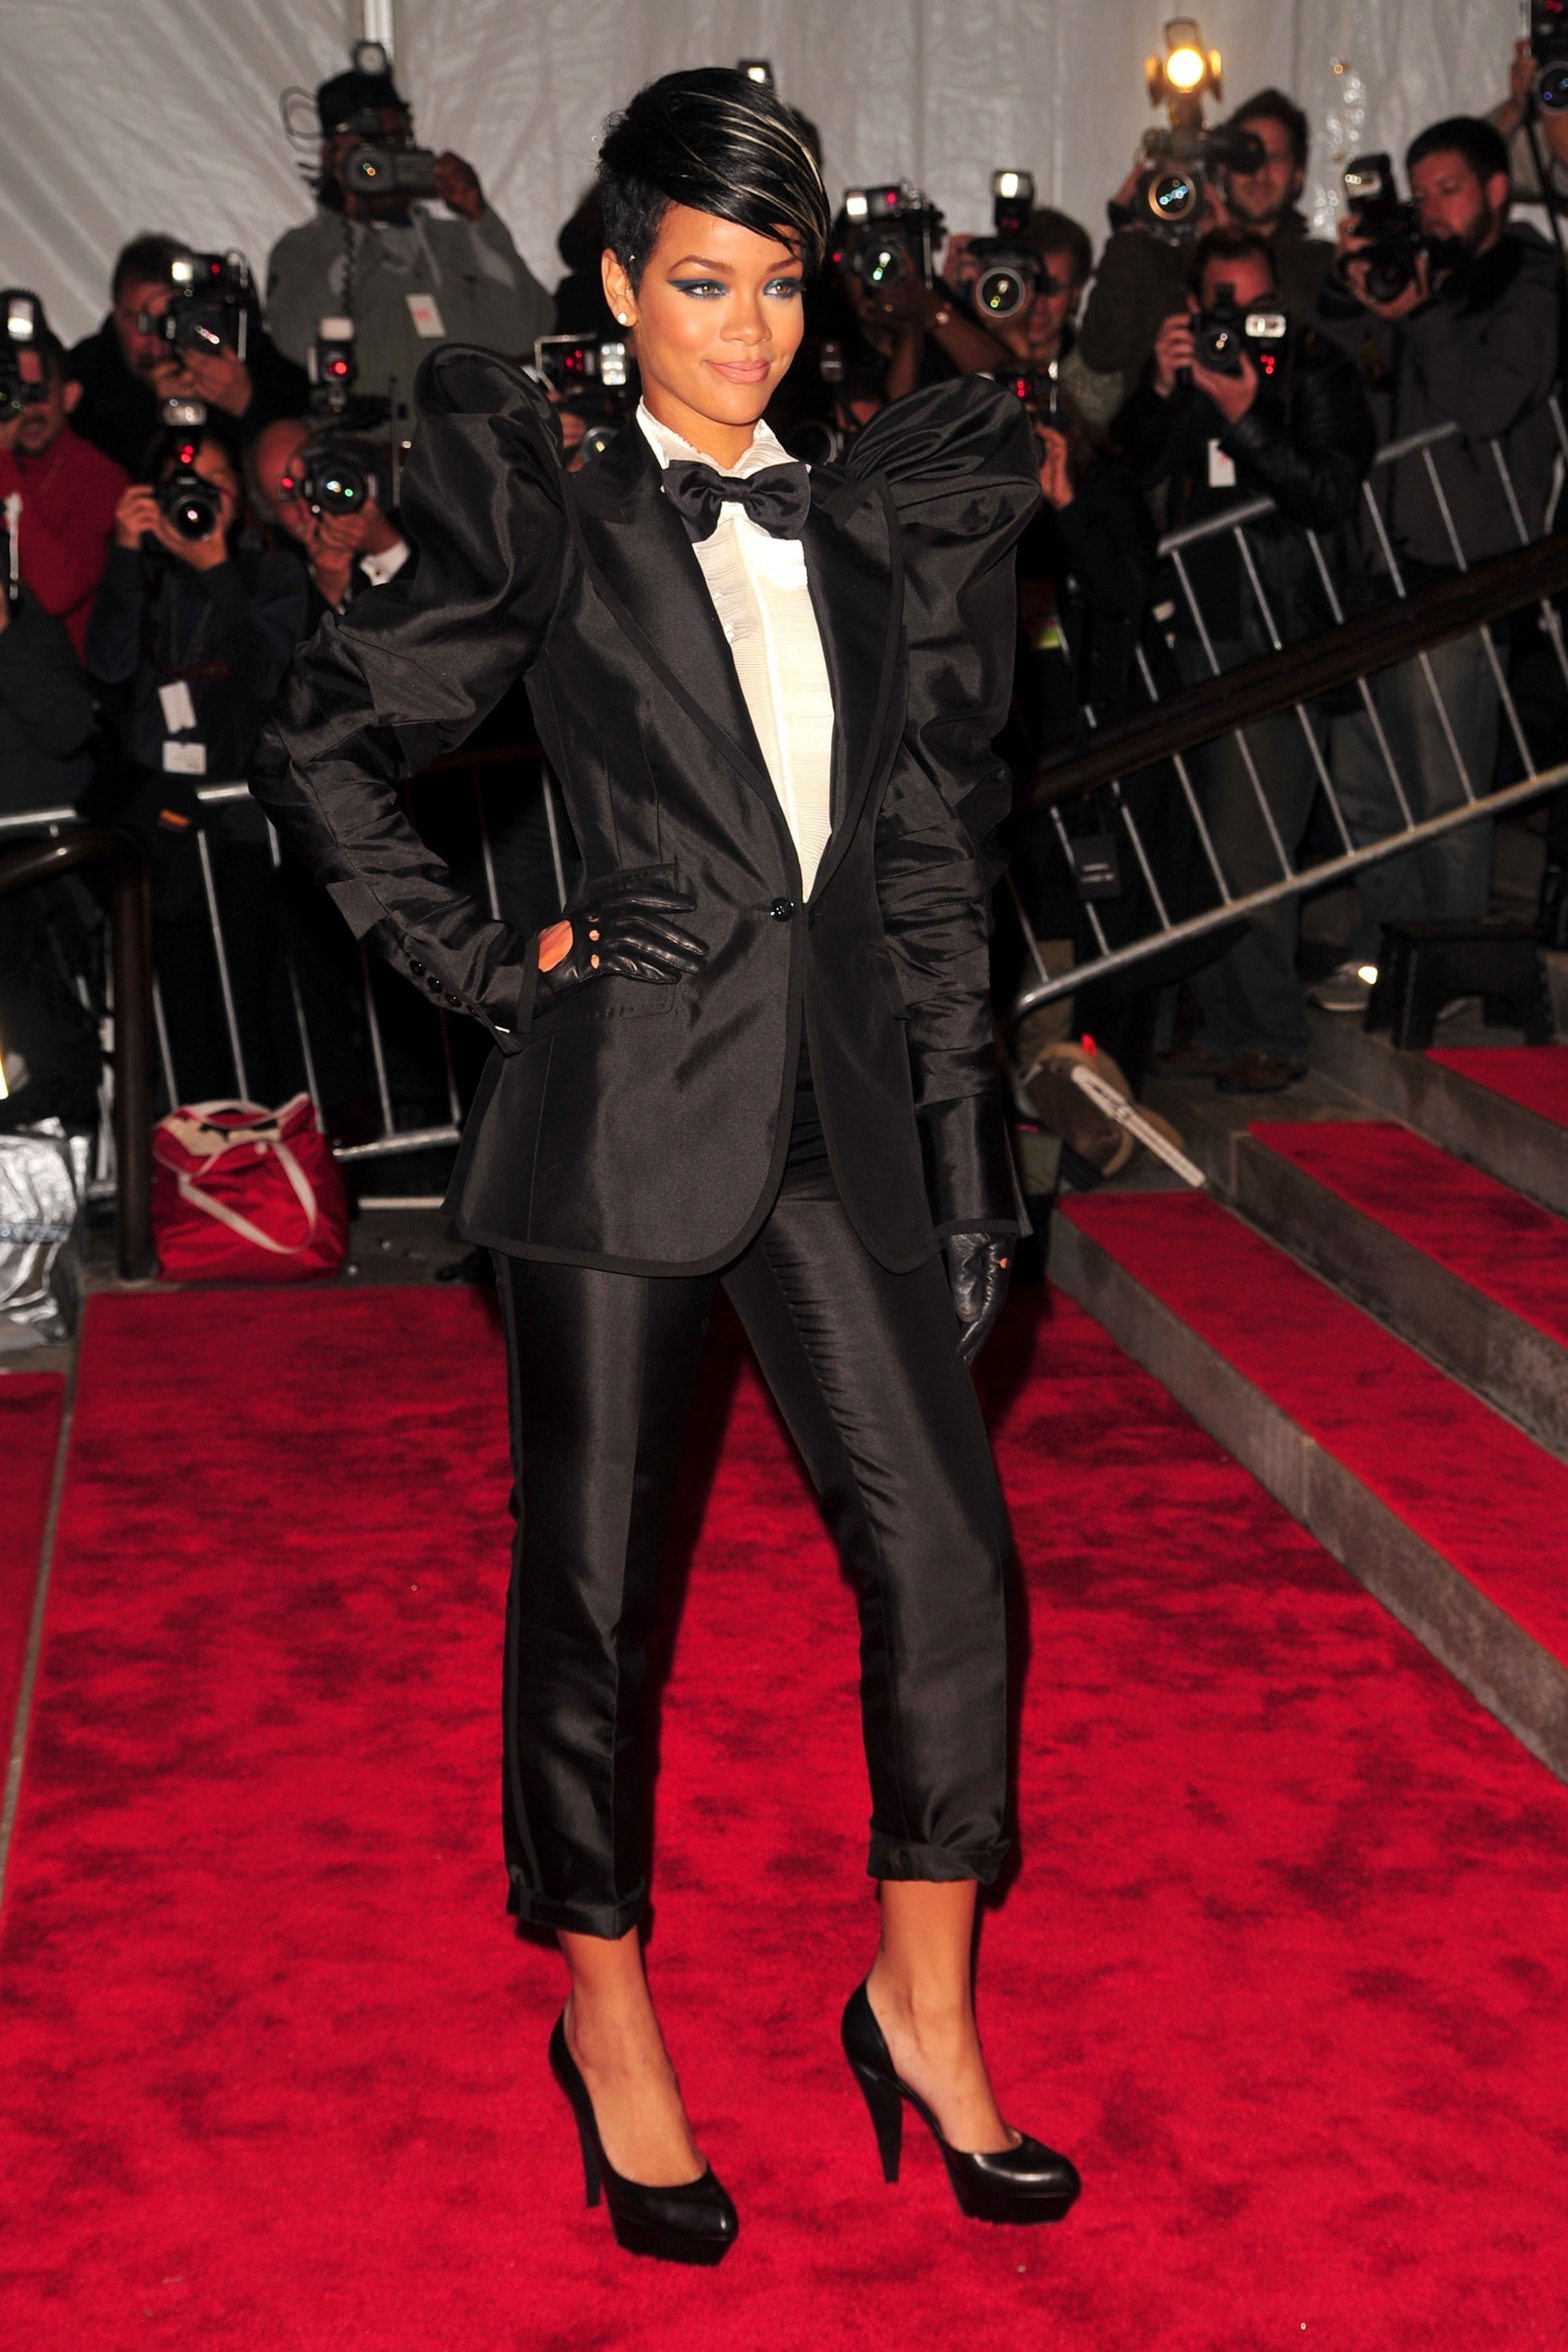 Rihanna at the Met Gala: See All Of Her Red Carpet Looks ...